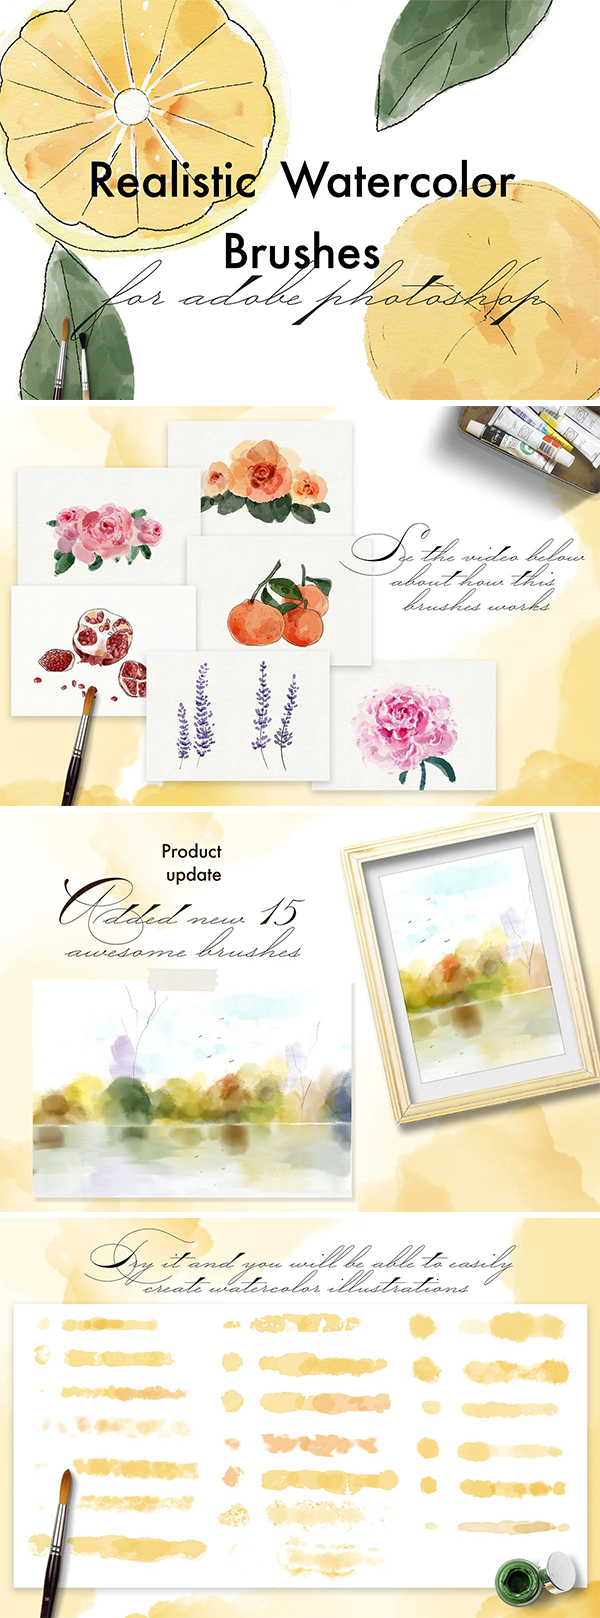 Realistic Watercolor Brushes